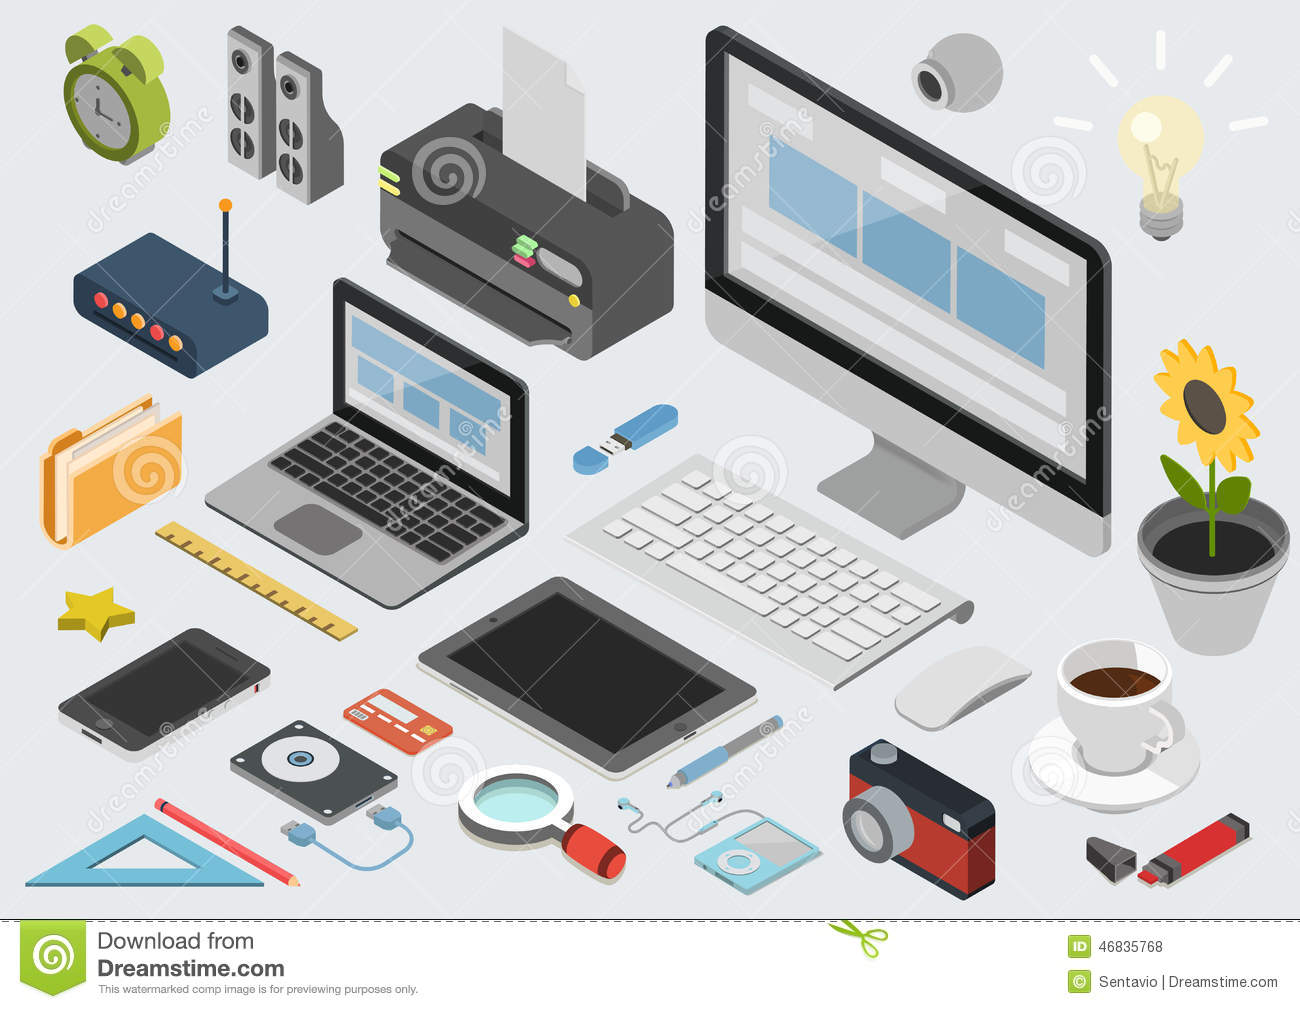 Flat 3d isometric technology workspace infographic icon for 3d flat design online